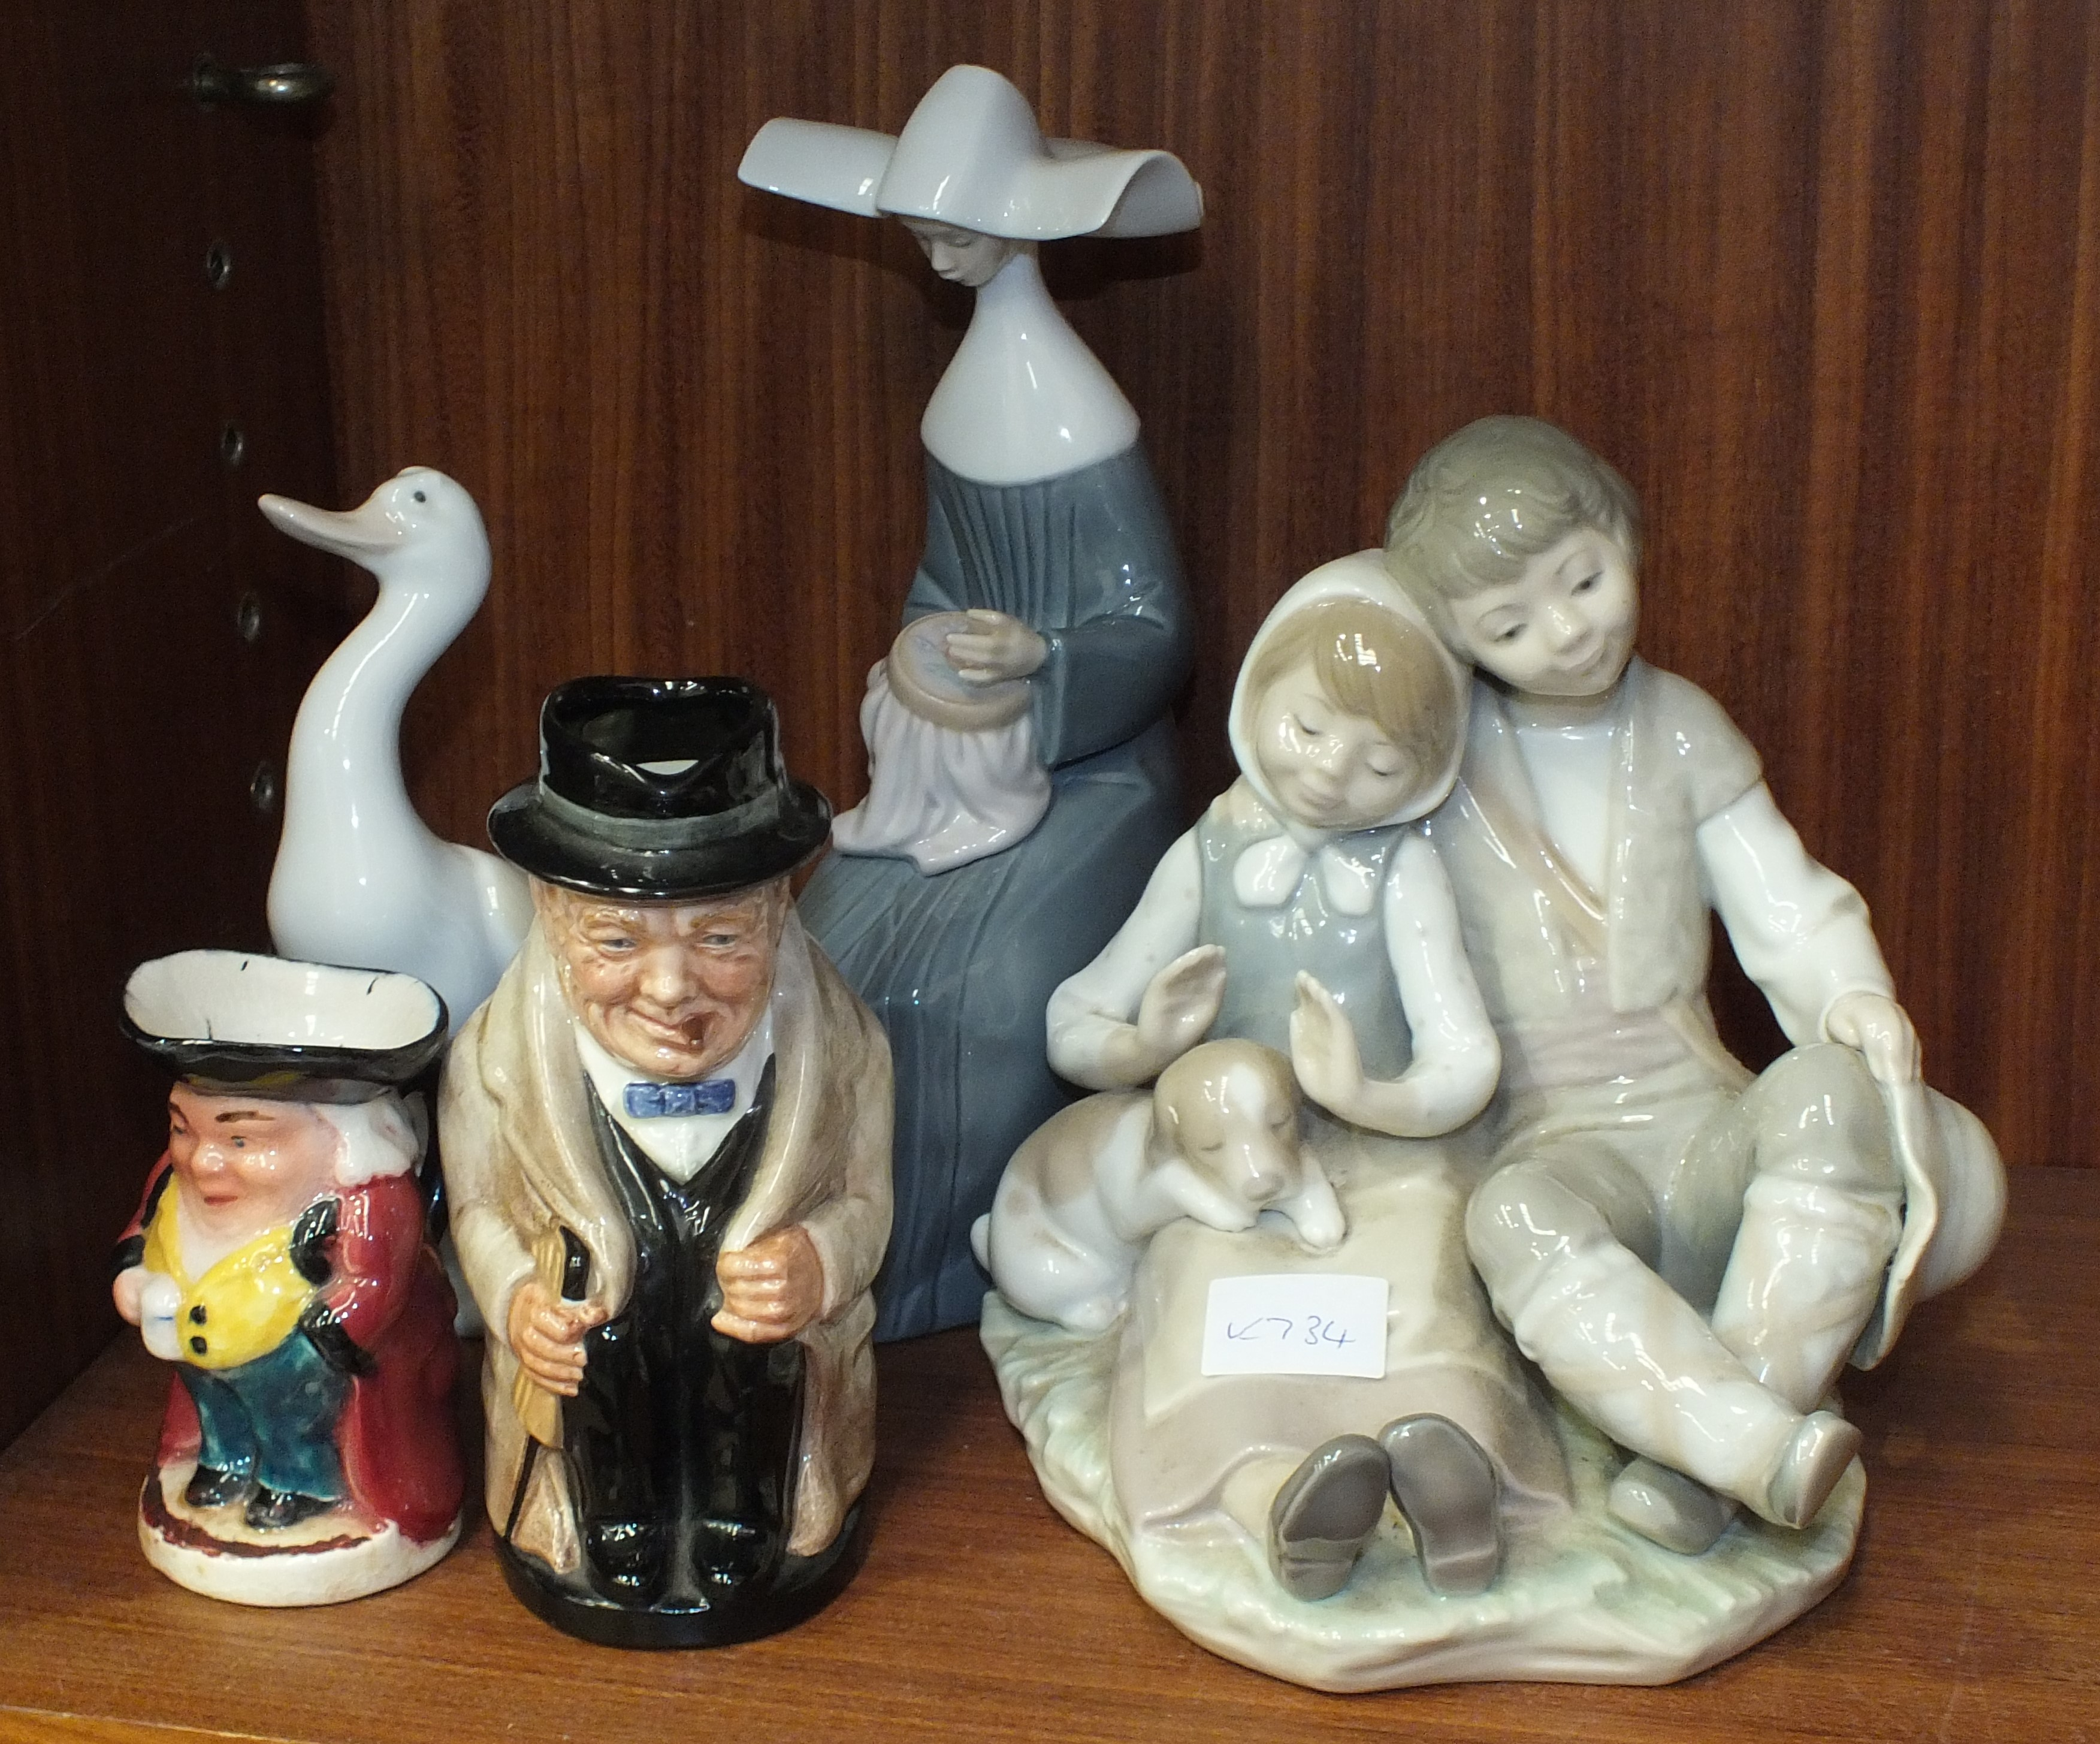 Lot 135 - A Lladro figure group of two children and a puppy, 18cm high, a Lladro figure of a seated nun,